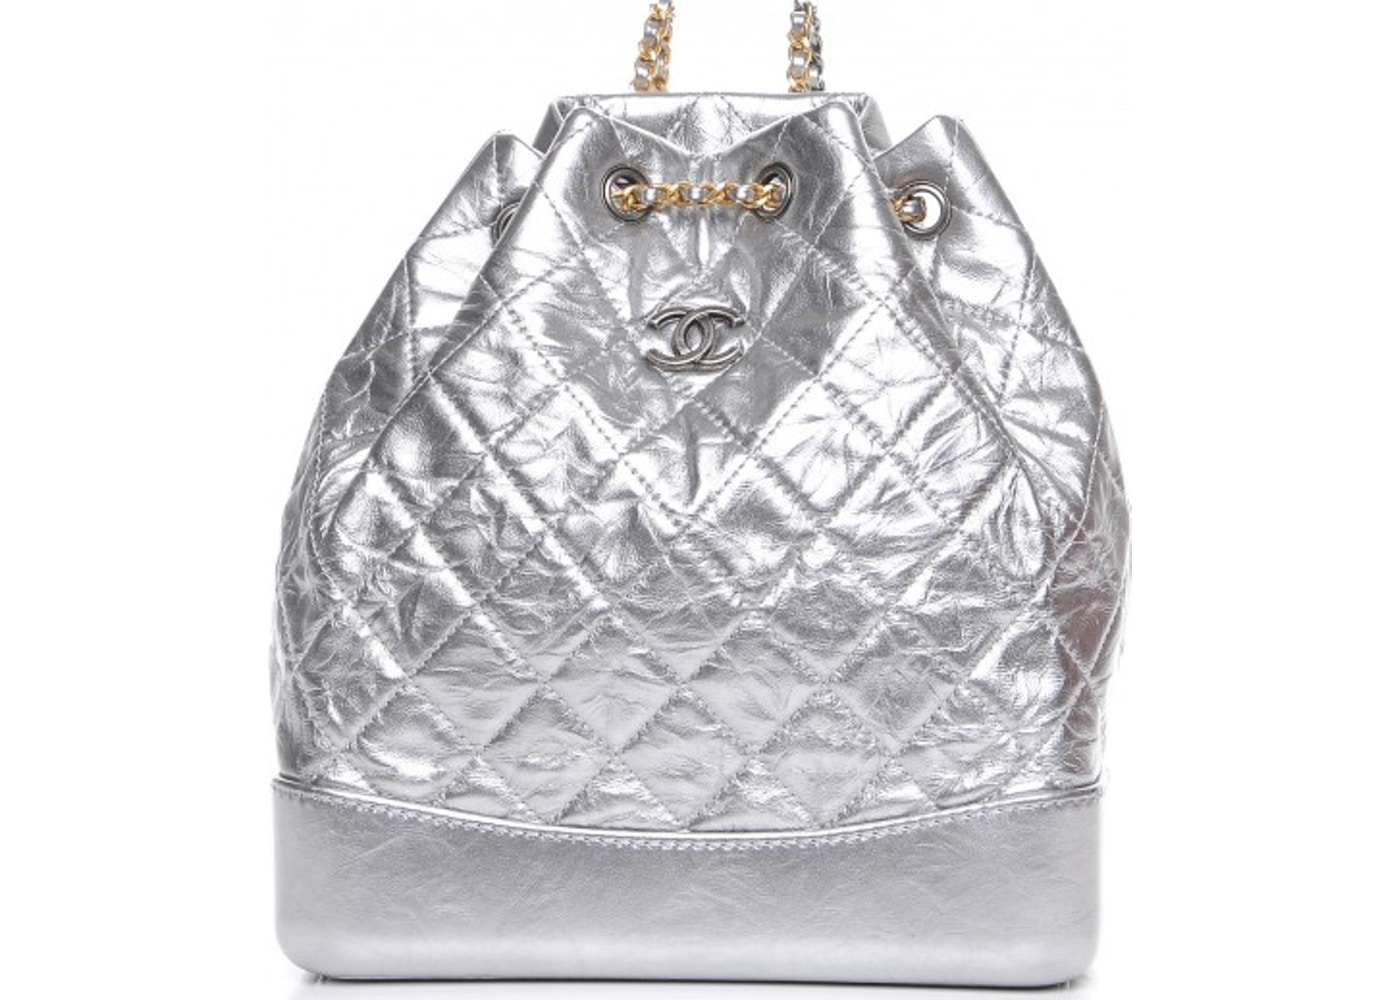 897c734e1d37 Chanel Gabrielle Backpack Quilted Diamond Metallic/Crumple Silver. Quilted  Diamond Metallic/Crumple Silver